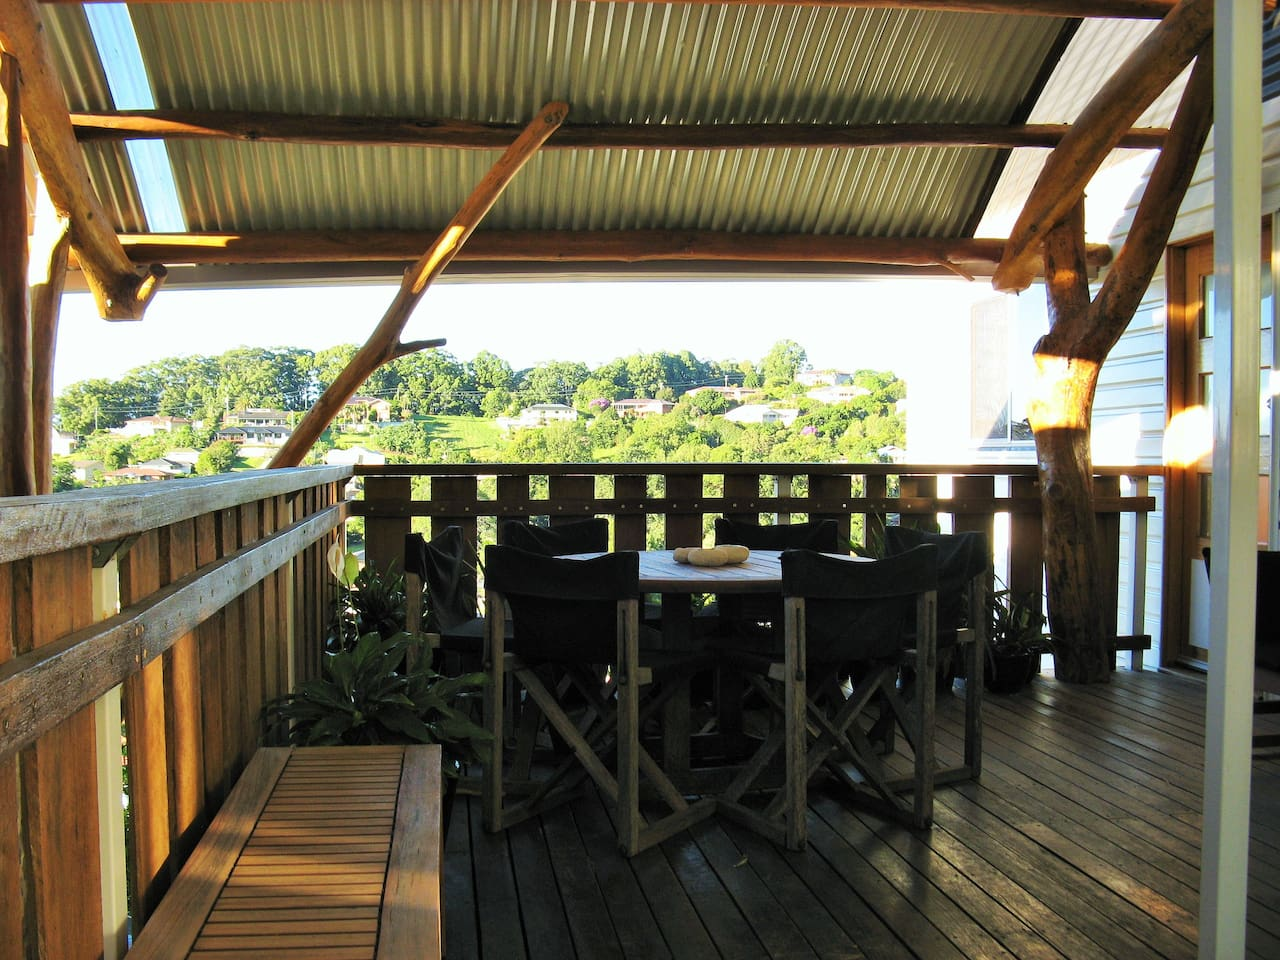 Main deck and entrance